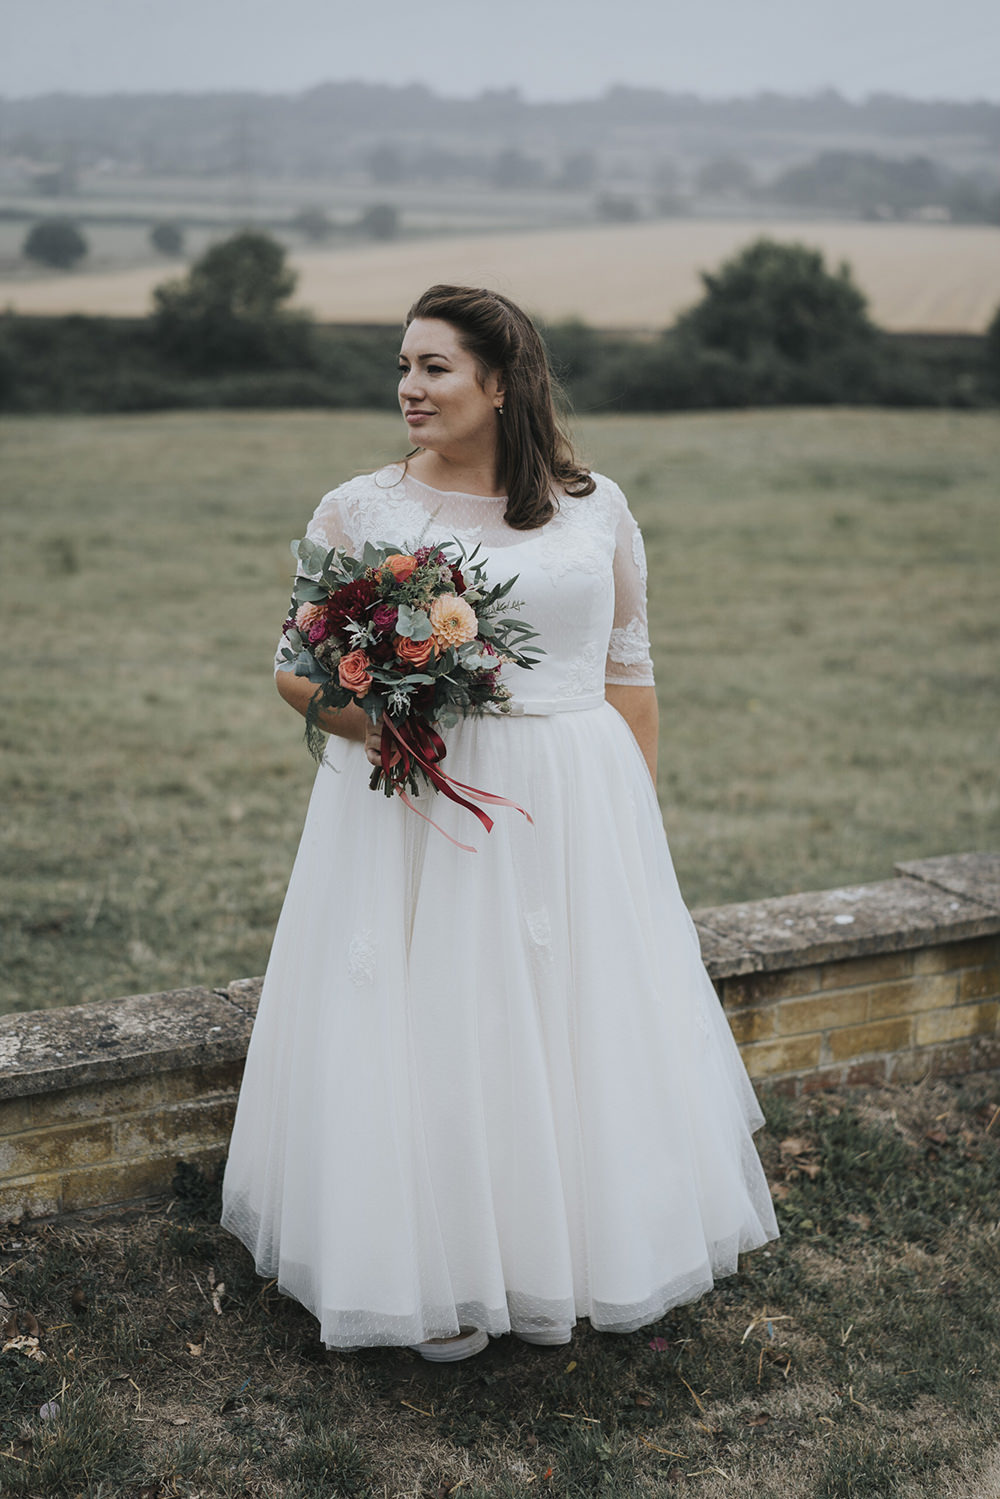 Bride Bridal Dress Gown Overlay Belt See Through Sleeves Bouquet Dahlia Burgundy Coral Celestial Cow Shed Wedding Tora Baker Photography